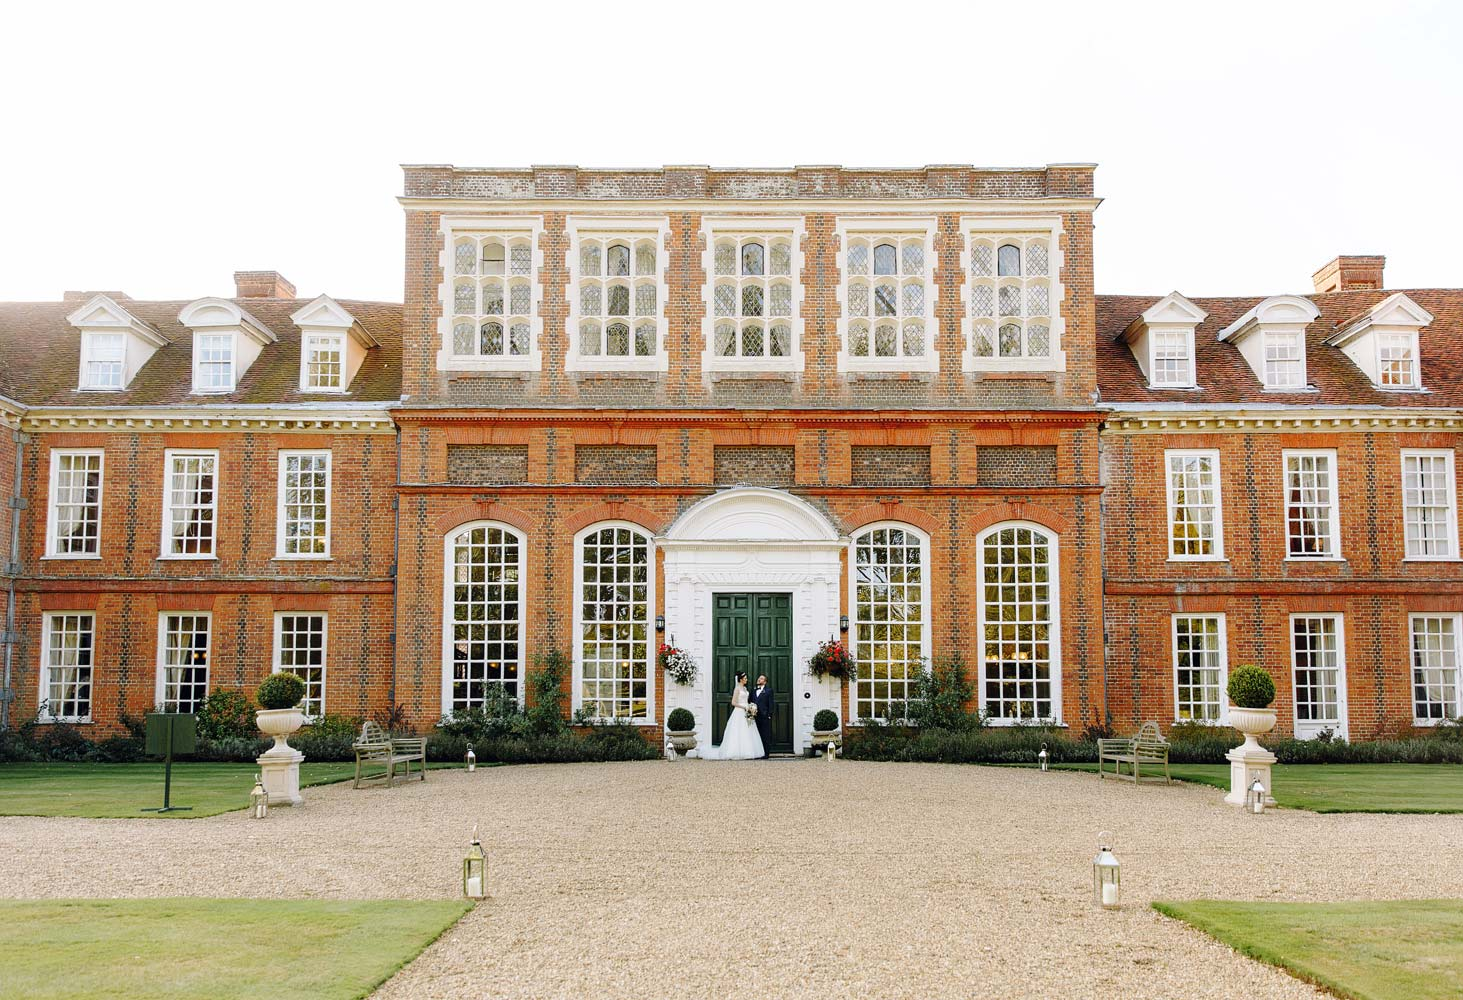 Gosfield Hall in Essex